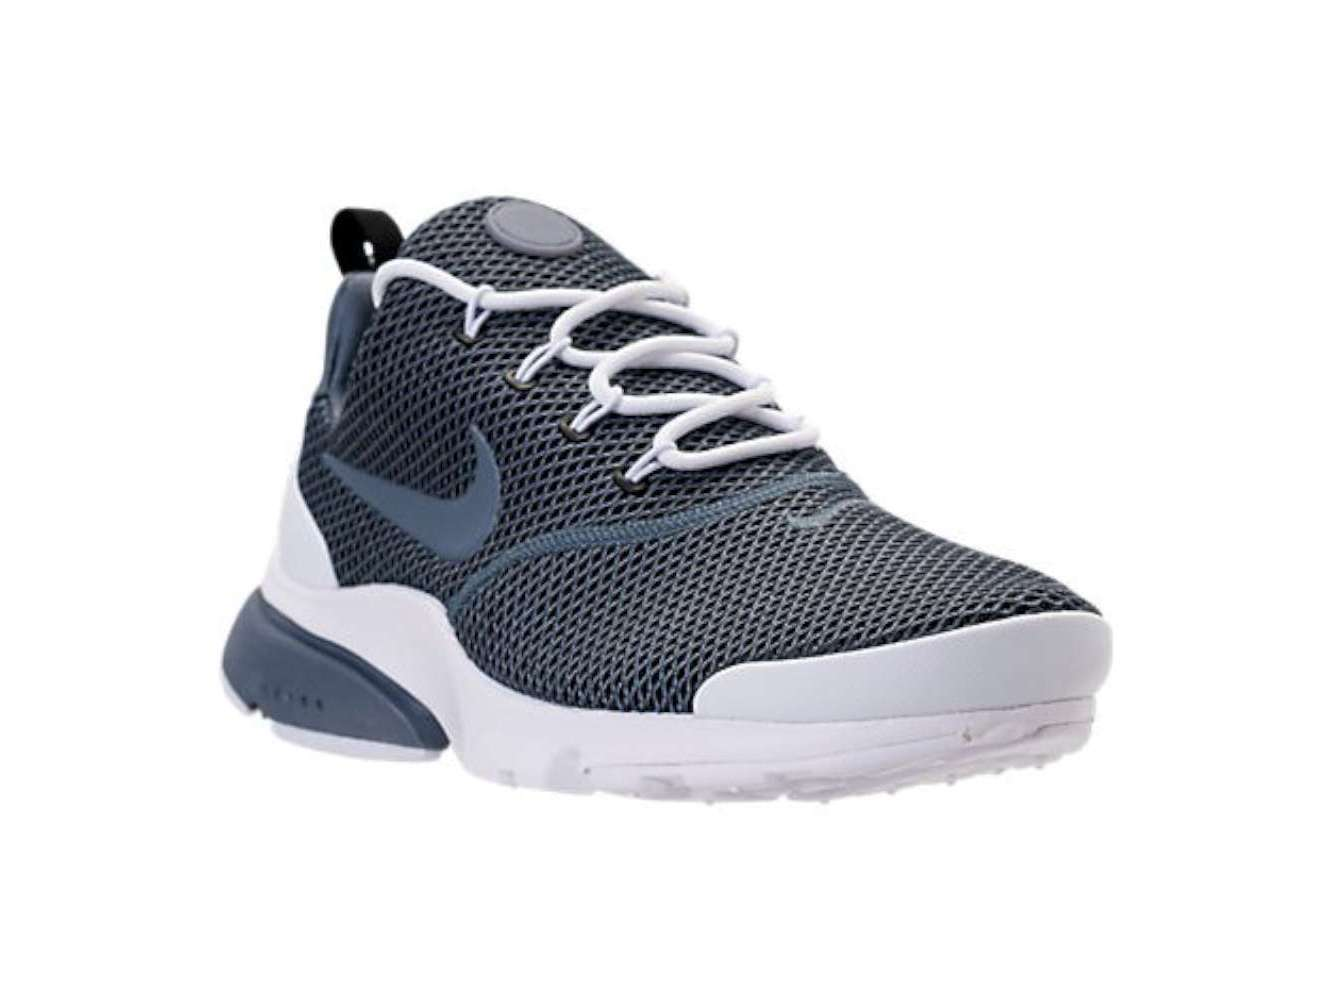 Nike Mens Presto Fly Se Low Top Lace Up Running Sneaker Clothes, Shoes & Accessories Trainers